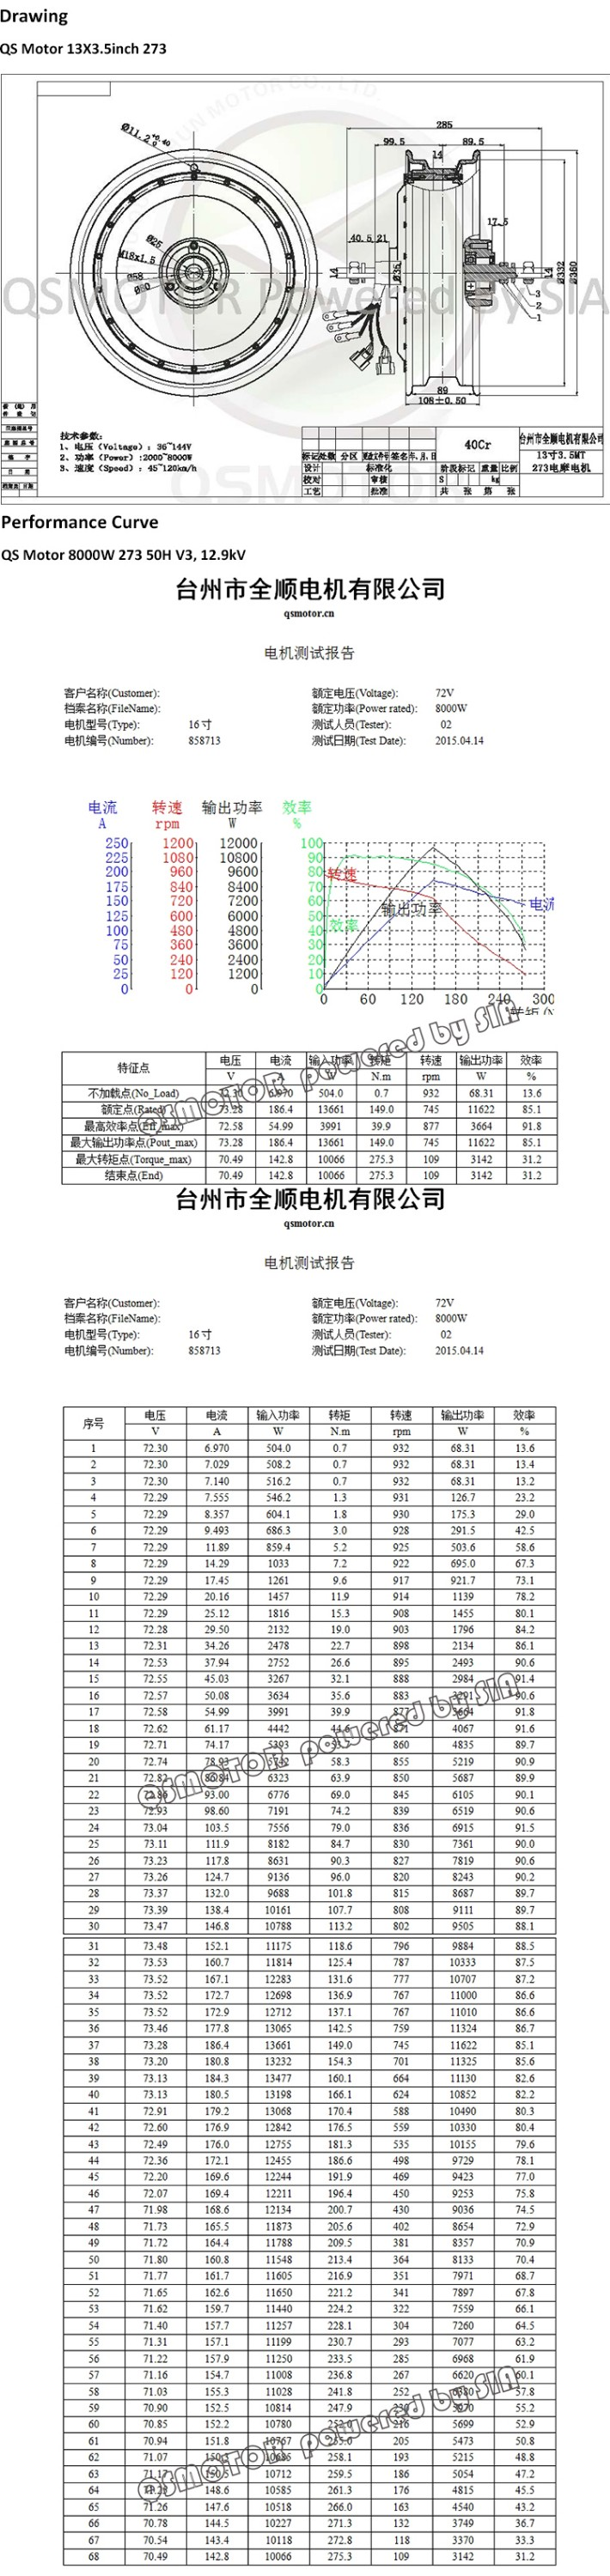 13inch 273 Drawing & Test Report Performance Curve